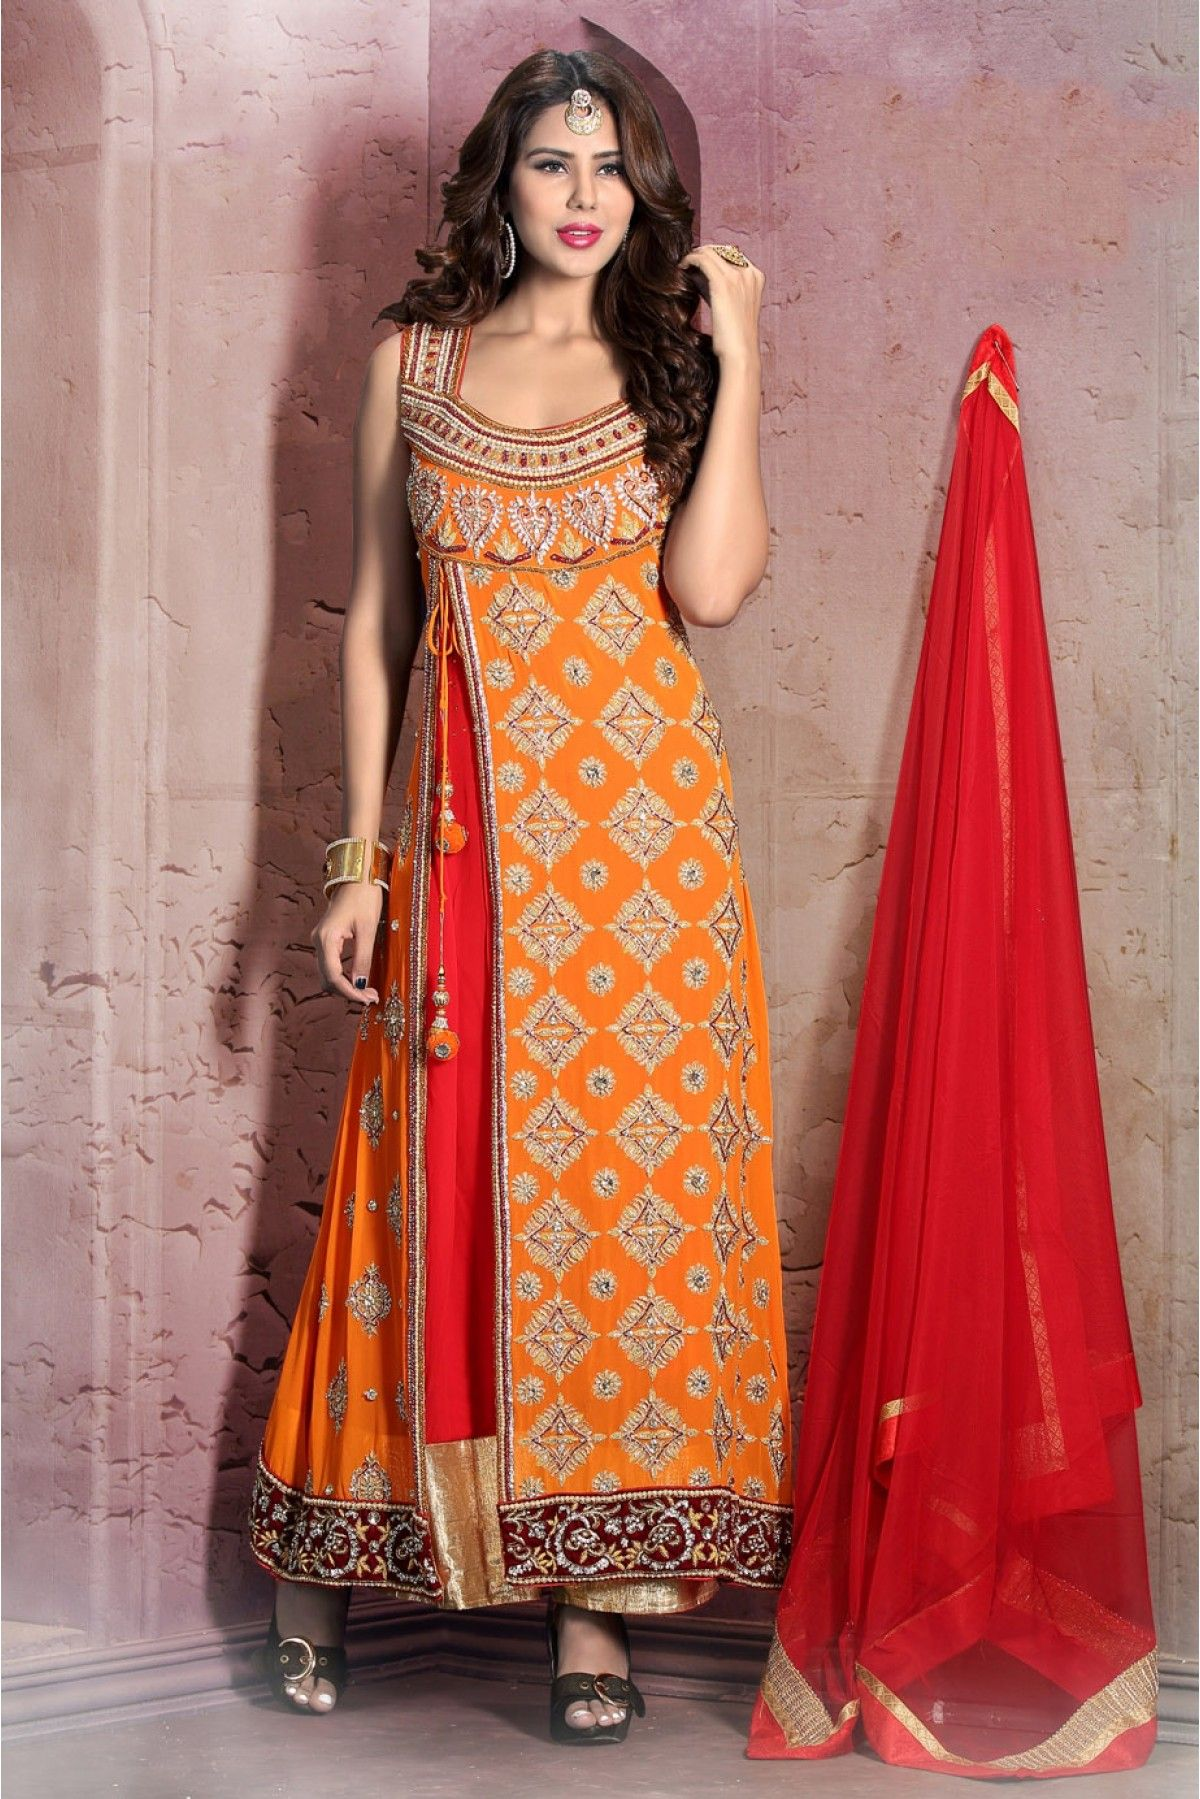 752967f08856 Orange Colour Georgette Fabric Party Wear Semi Stitched Anarkali Suit Comes  With Matching Bottom and Dupatta. This Suit Is Crafted With Cut Dana